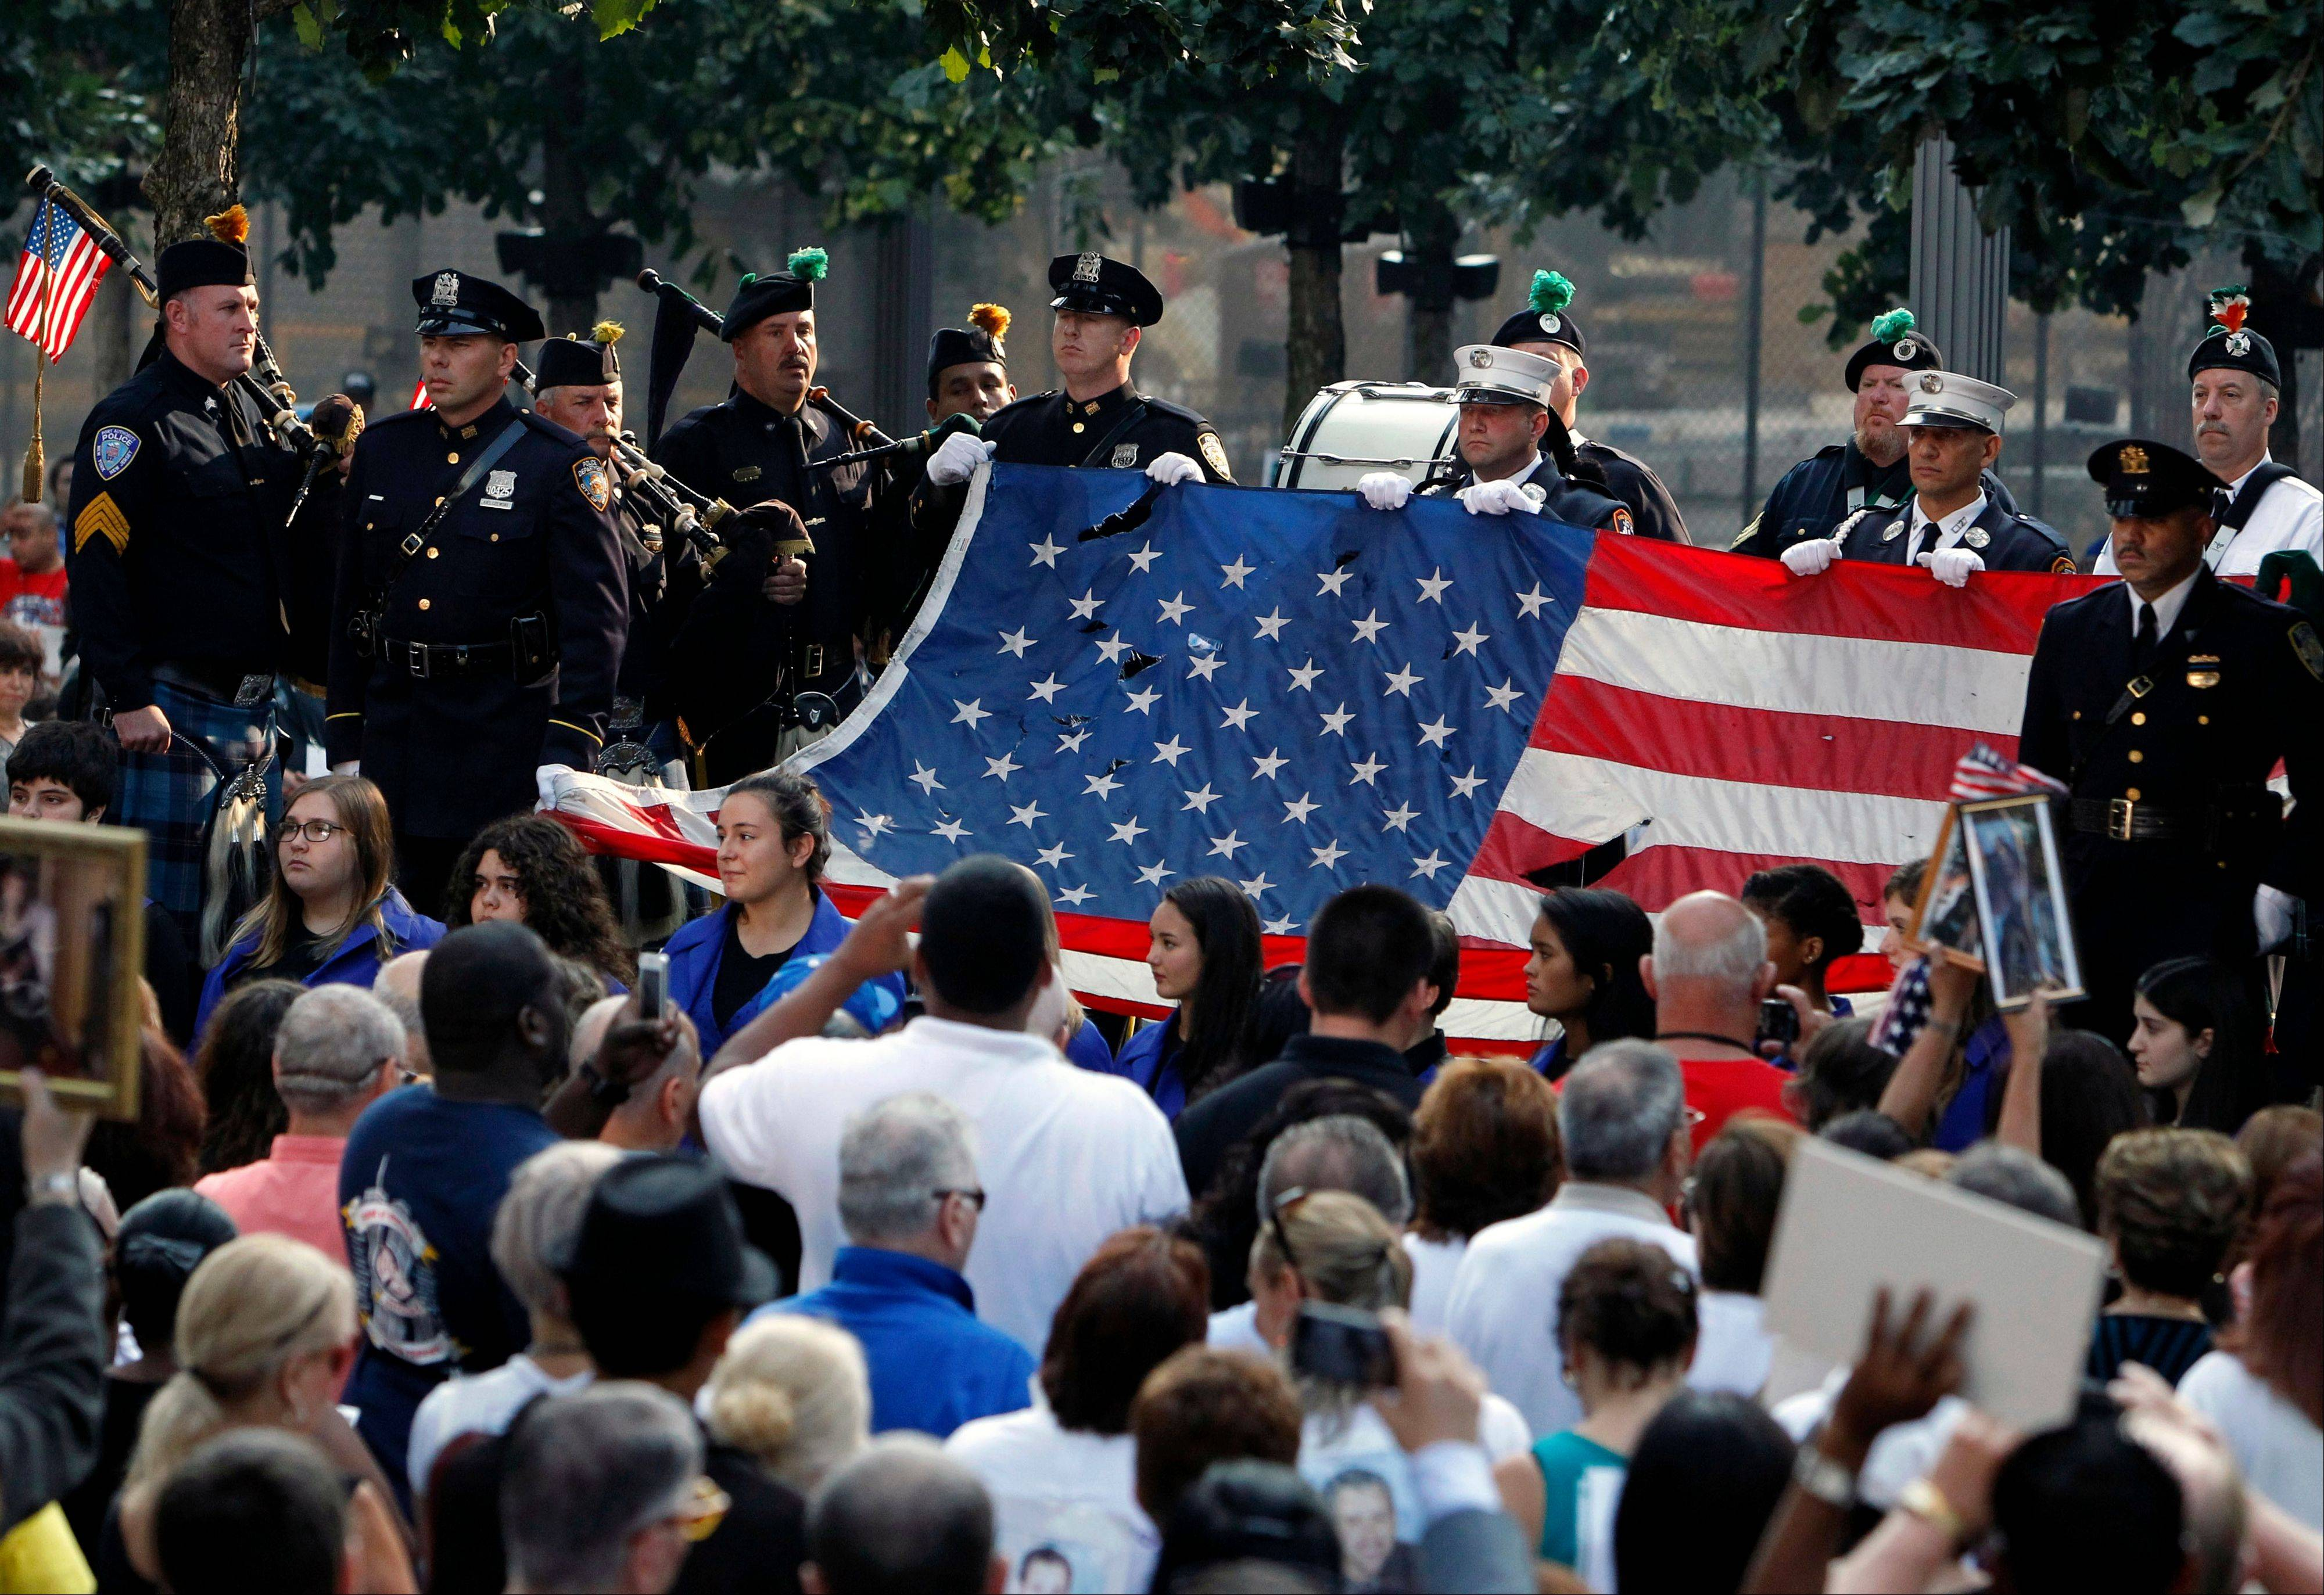 The World Trade Center Flag is presented as friends and relatives of the victims of the 9/11 terrorist attacks gather at the National September 11 Memorial at the World Trade Center site, Wednesday, Sept. 11, 2013, for a ceremony marking the 12th anniversary of the attacks in New York.